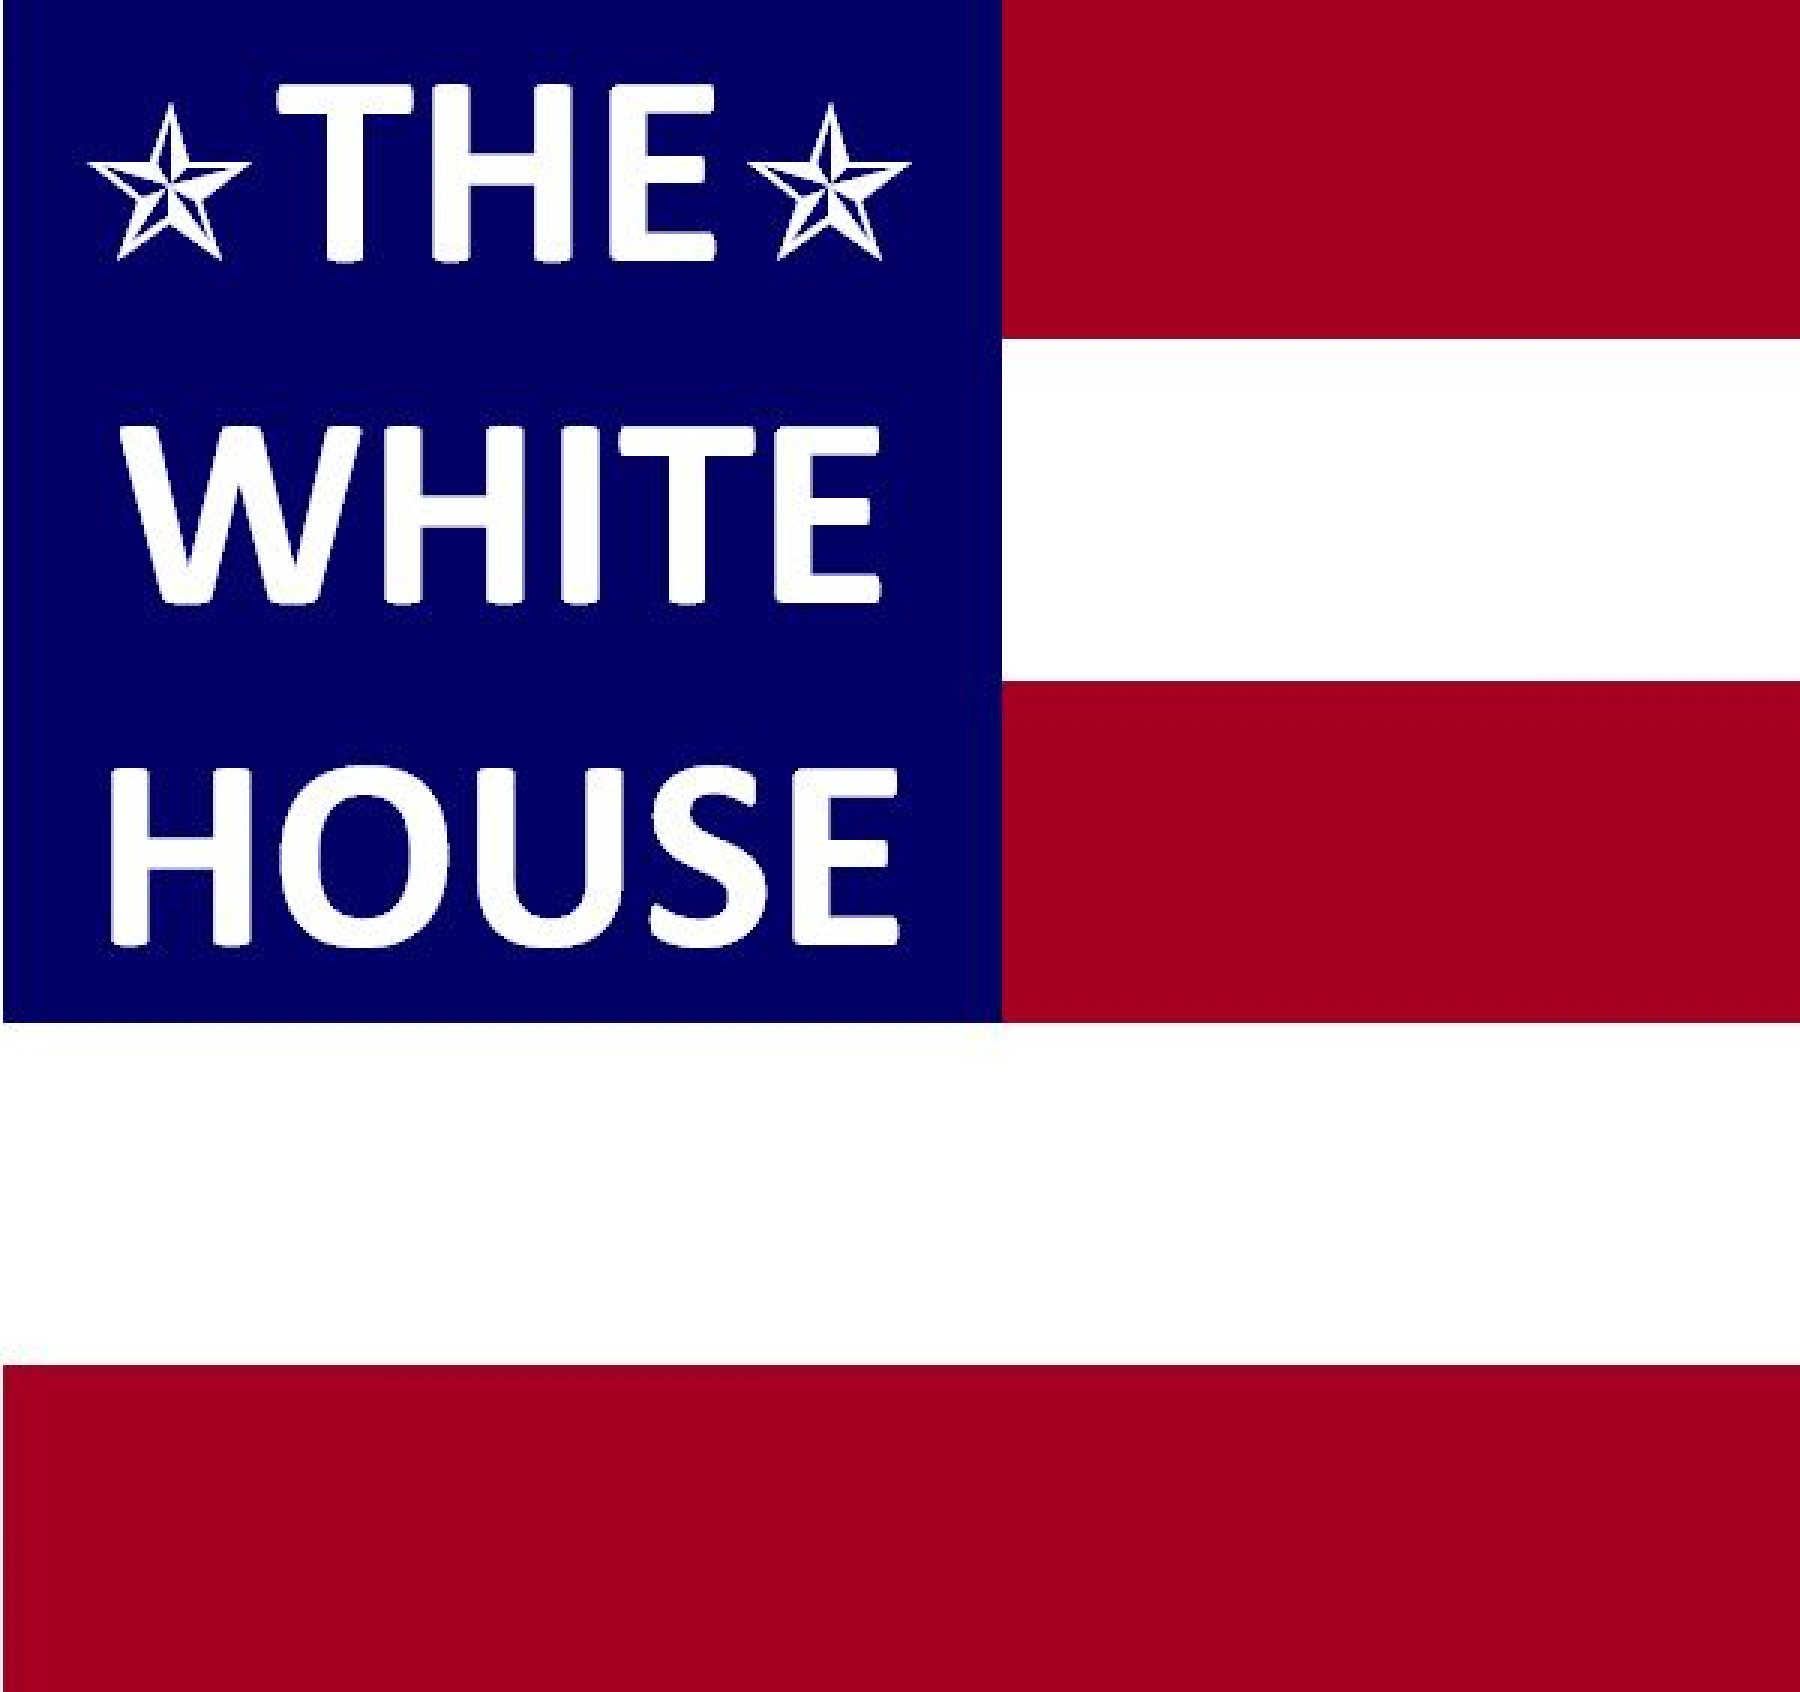 Bild Logo von: THE WHITE HOUSE